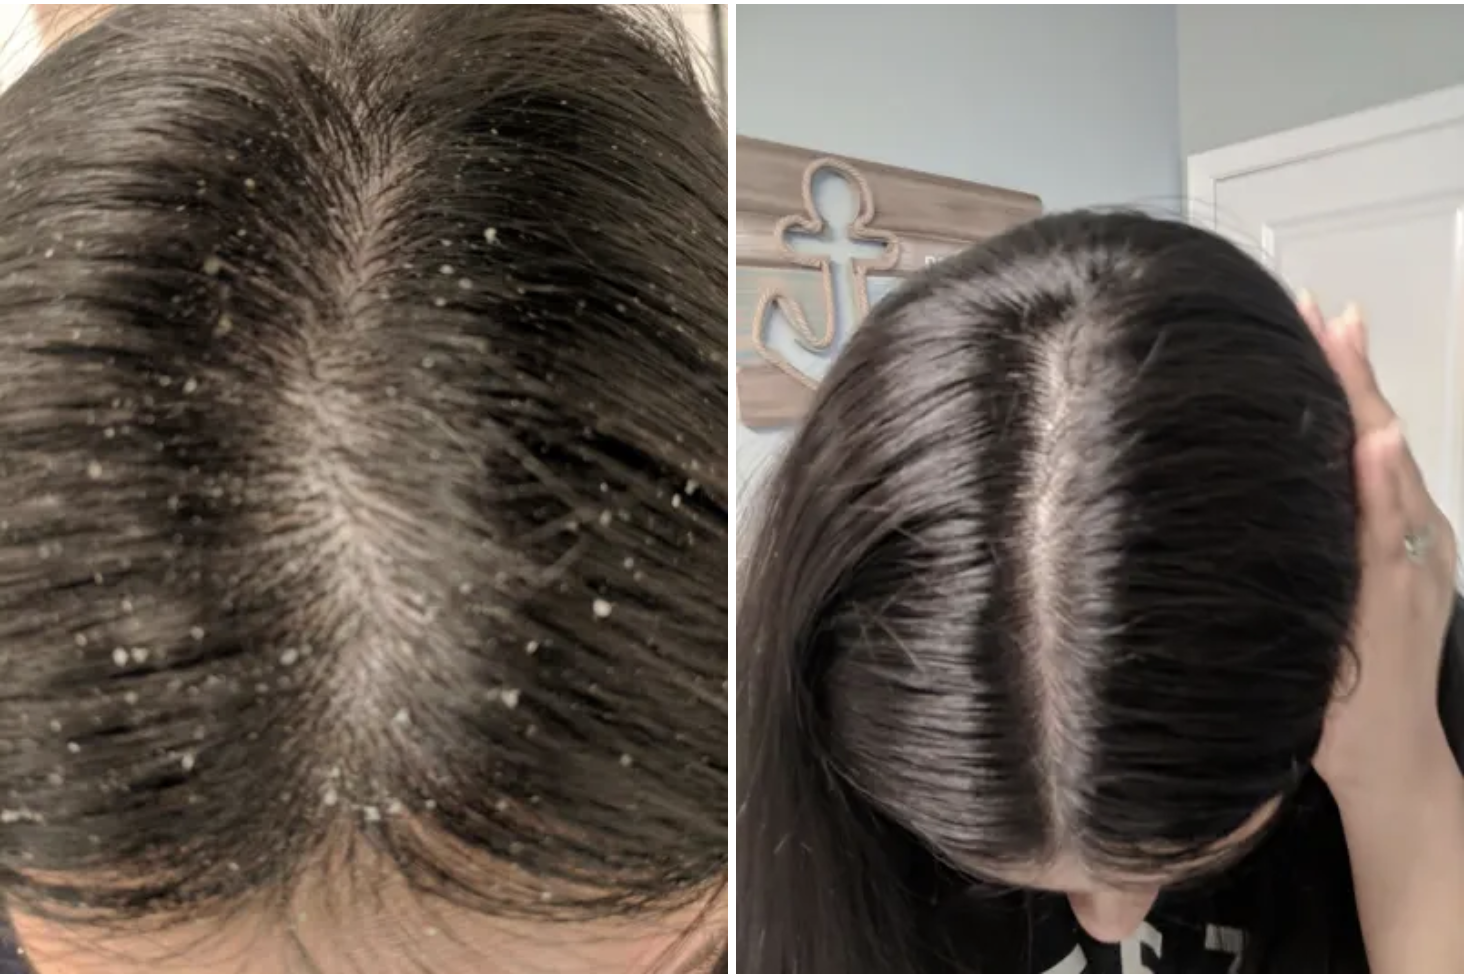 A reviewers scalp with a significant amount of flakes on the left, the same reviewer's scalp, but shiny and flake-free on the right